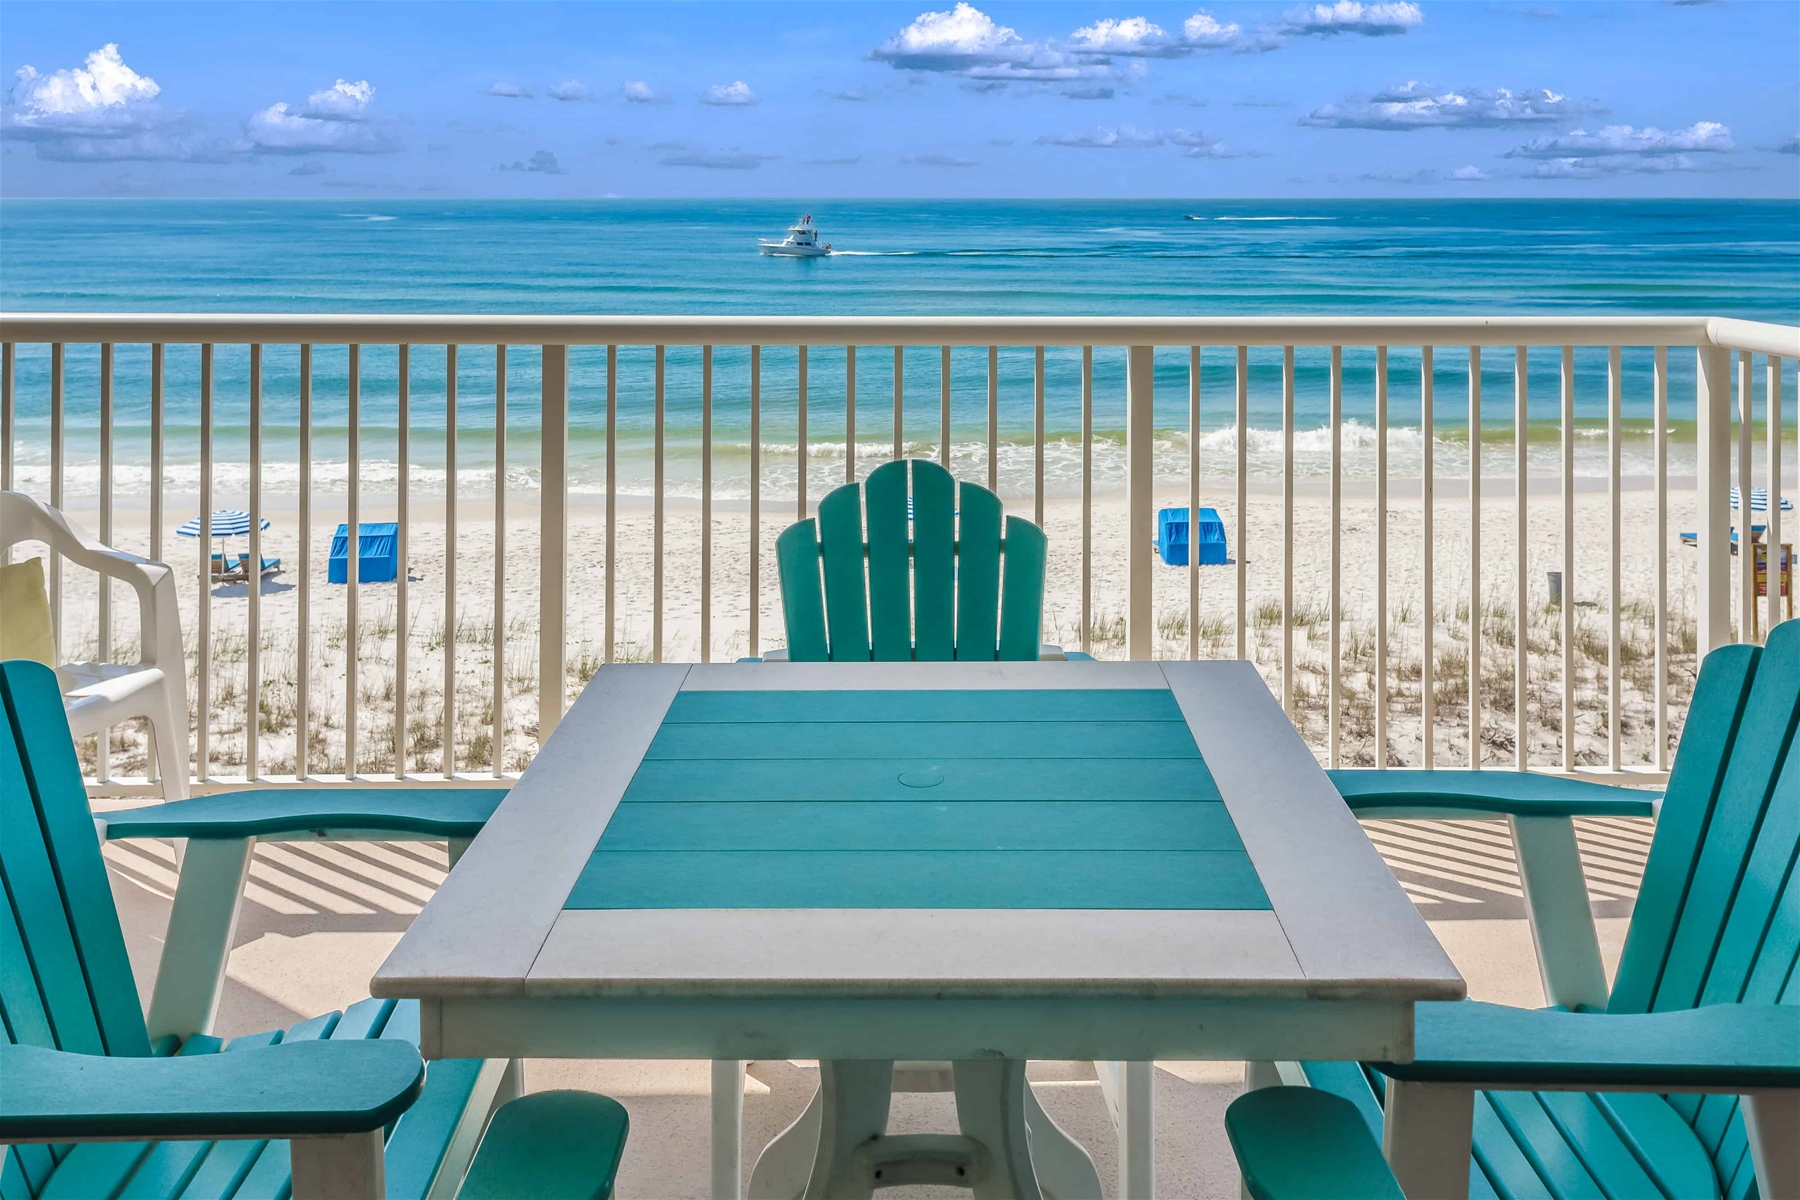 Beautiful private Ocean Drive beach house rental with direct beach access, pool and putting green